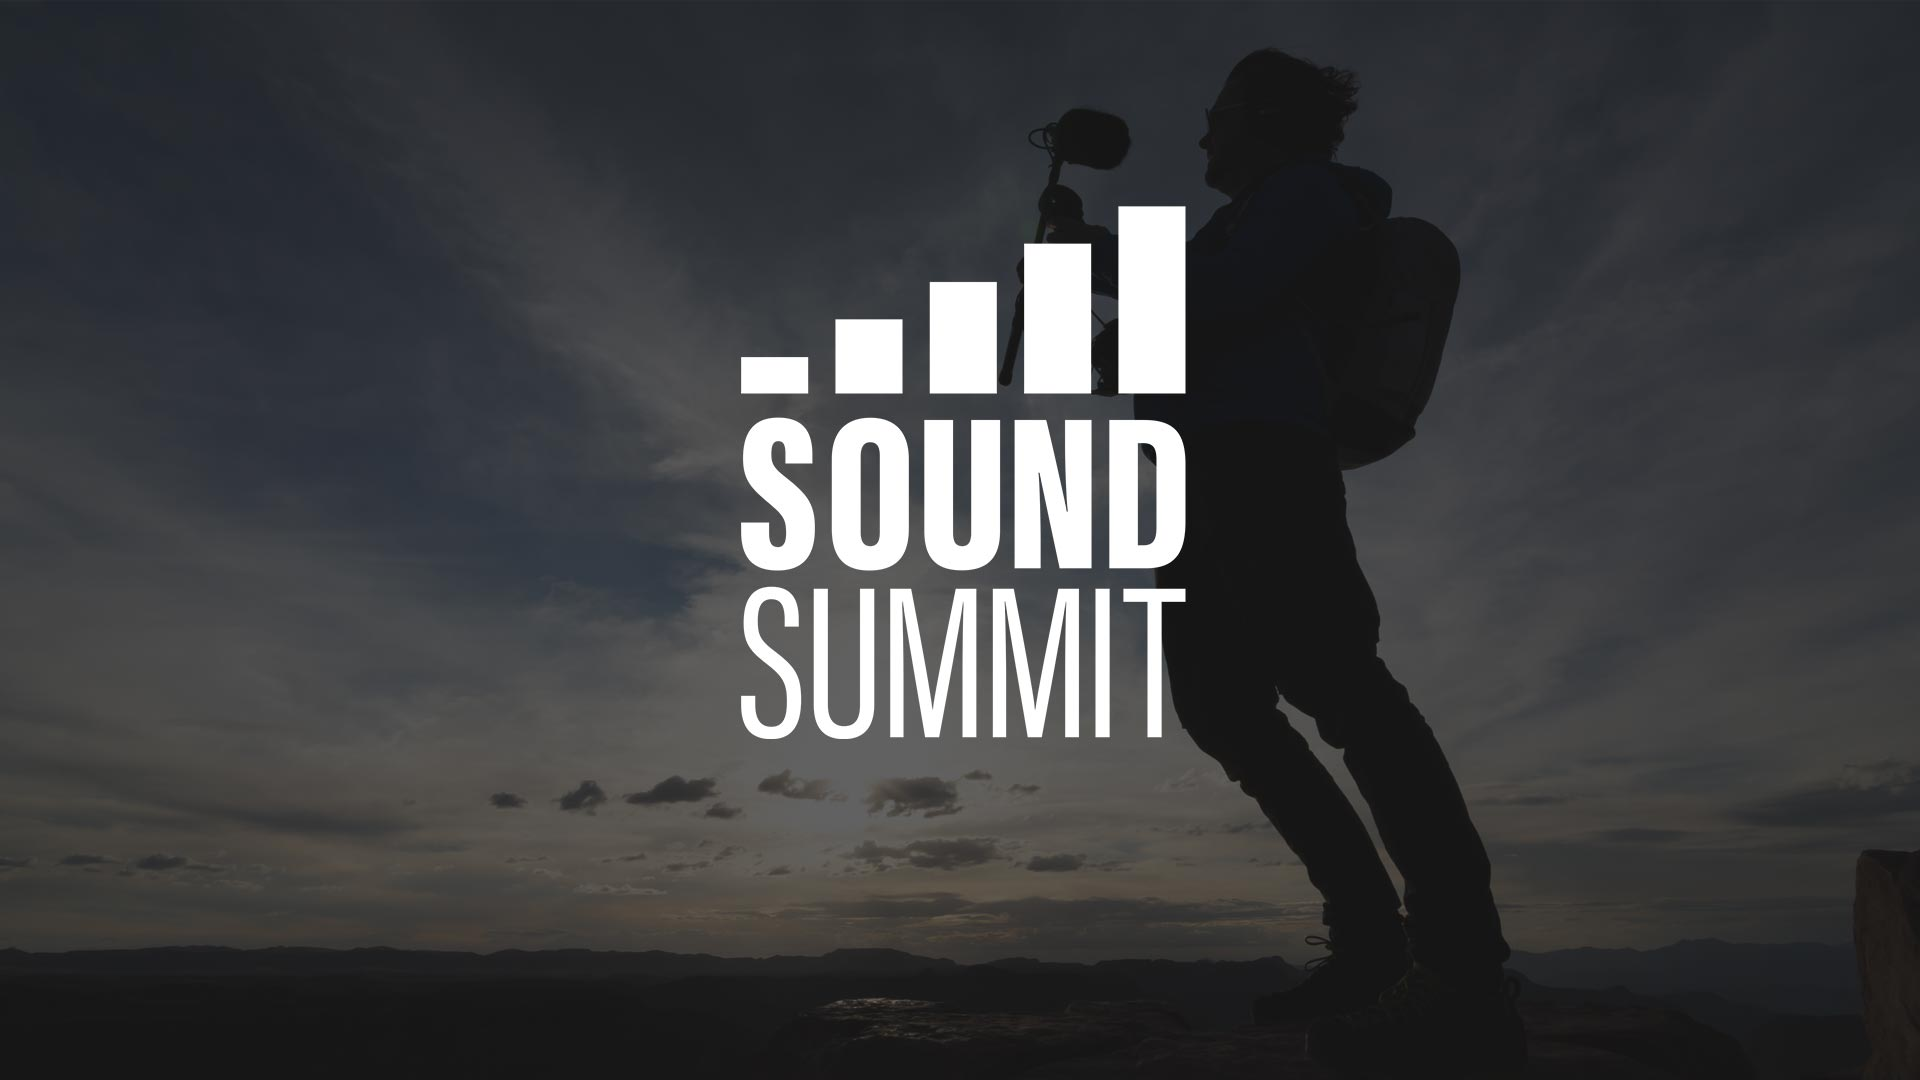 Sound Summit 2020 with Bubblebee Industries